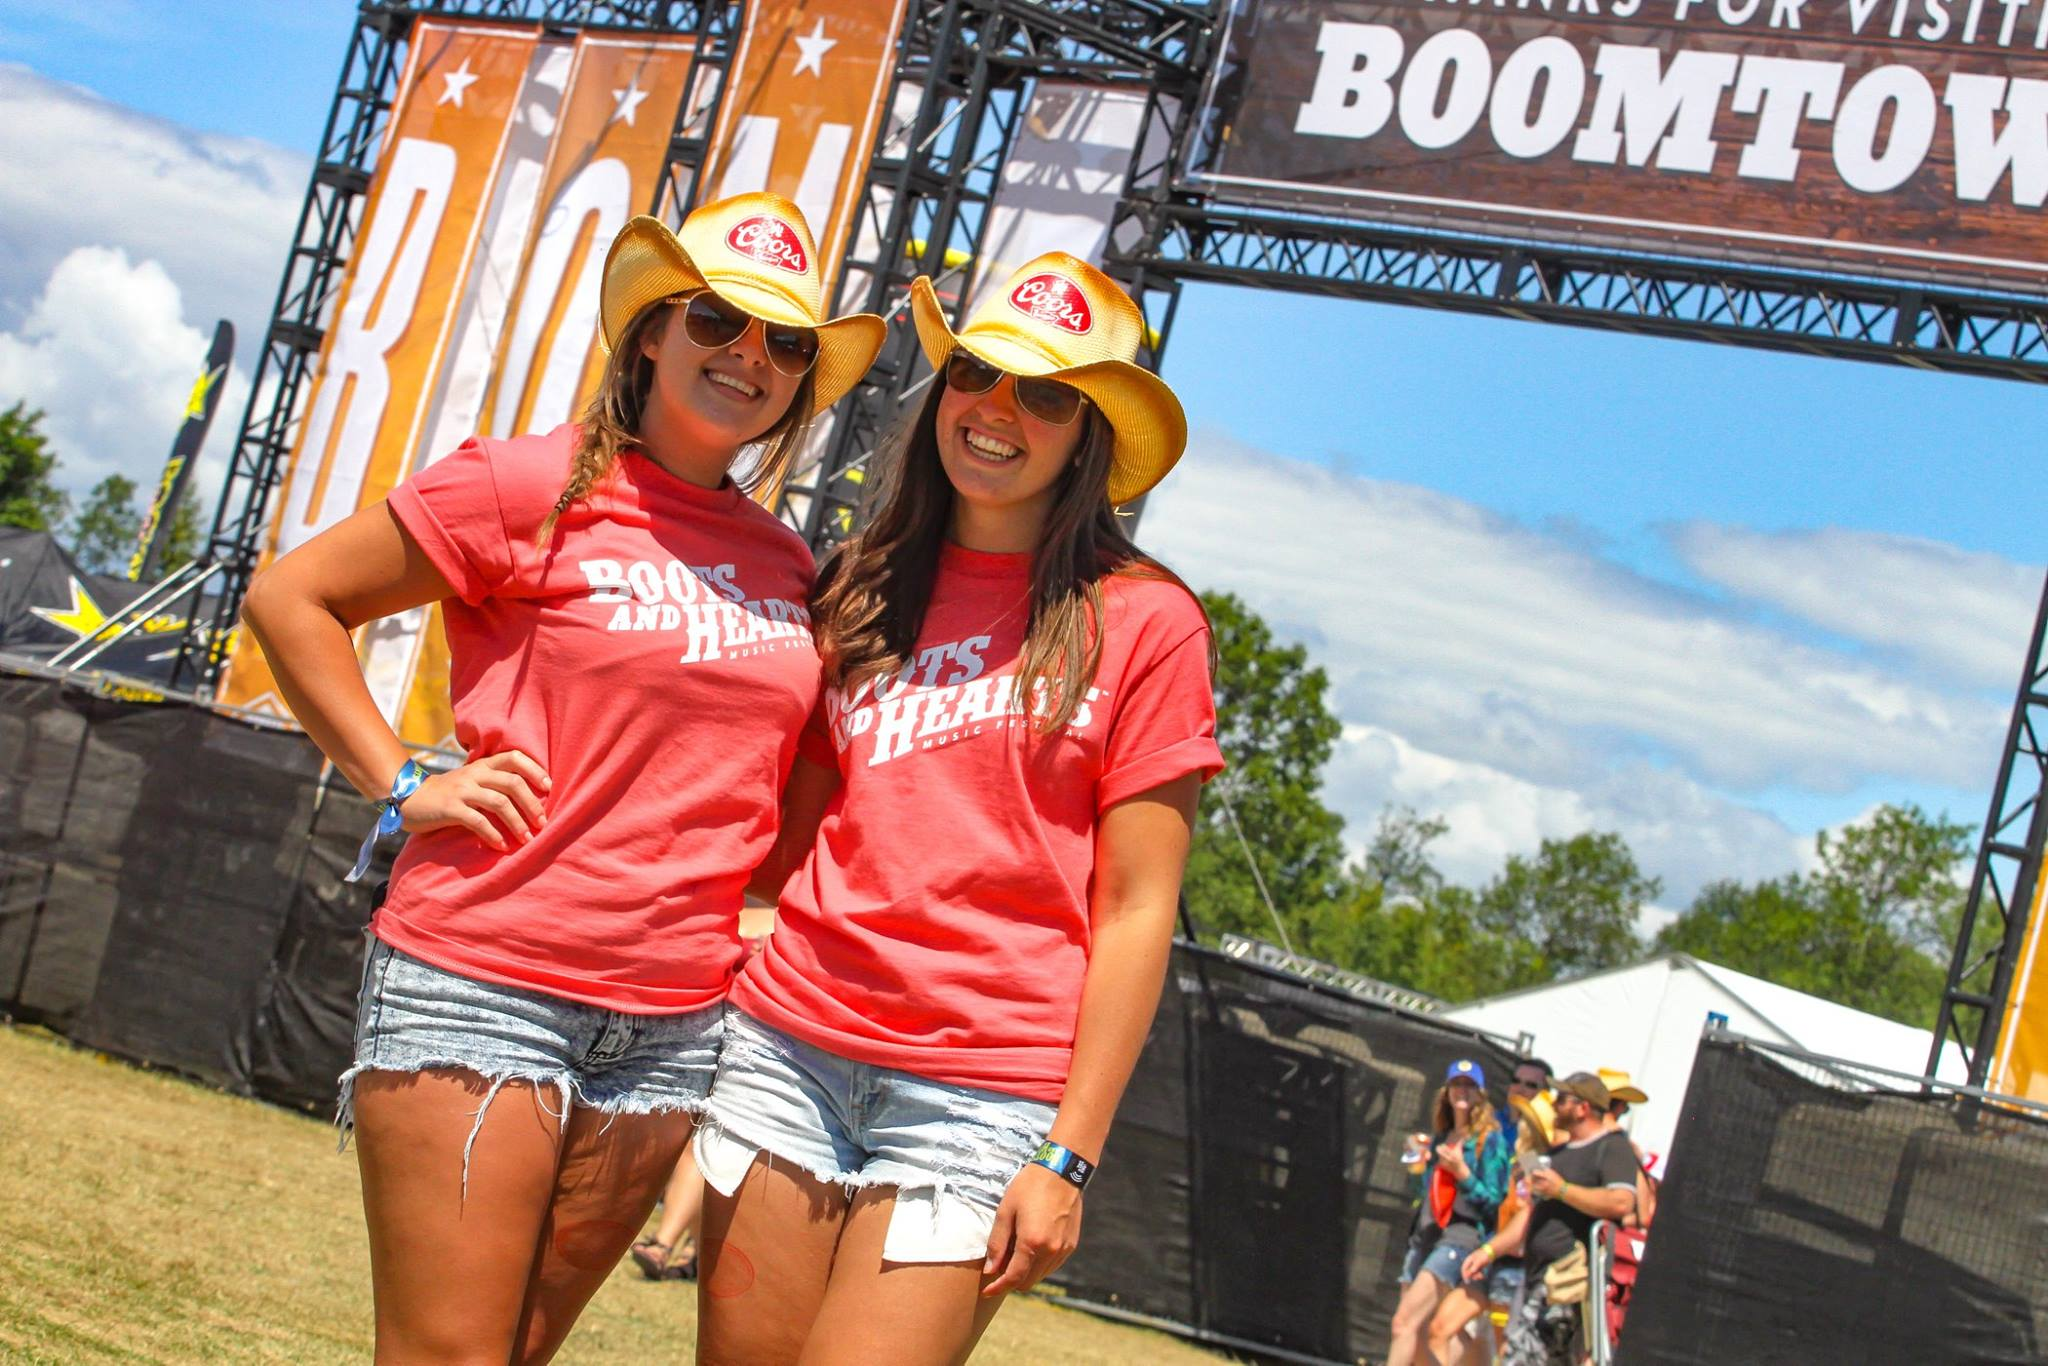 PHOTO: Concertgoers at Boots and Hearts Music Festival